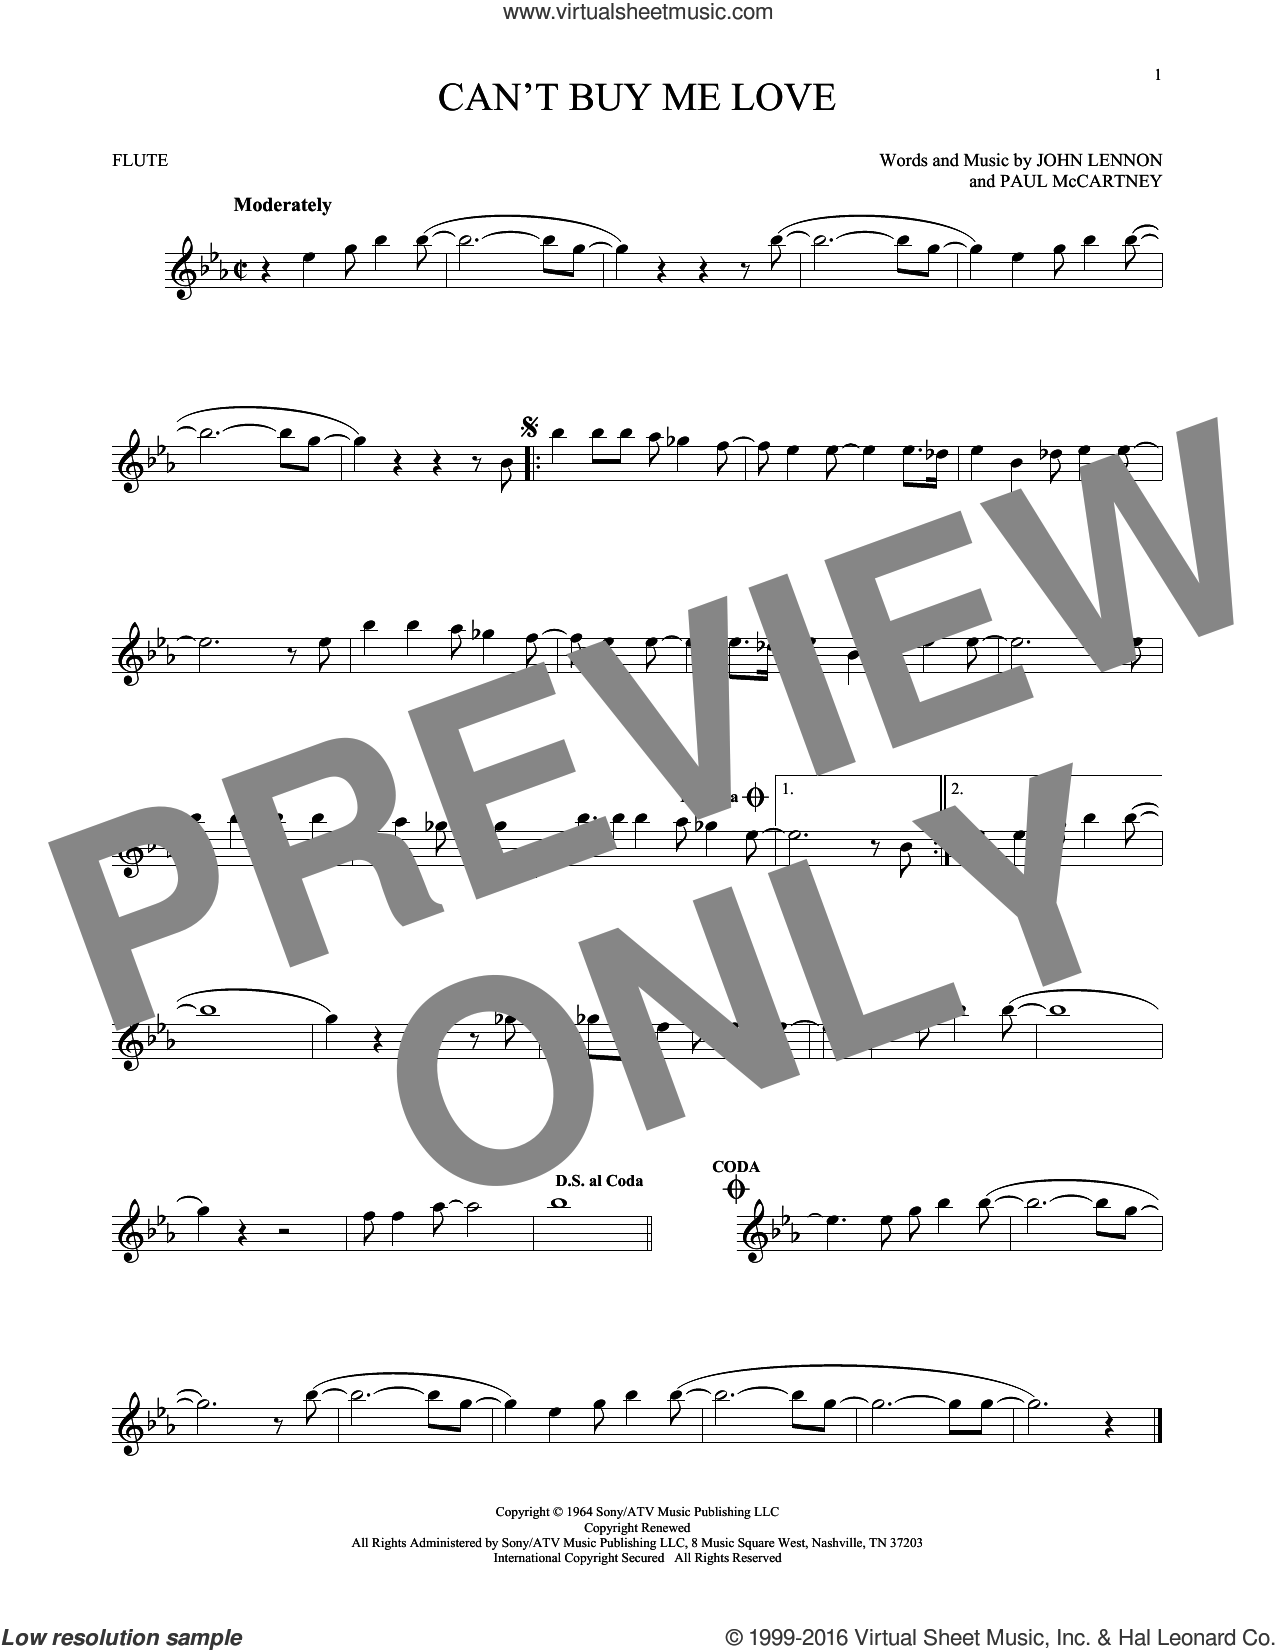 Can't Buy Me Love sheet music for flute solo by The Beatles, John Lennon and Paul McCartney, intermediate skill level